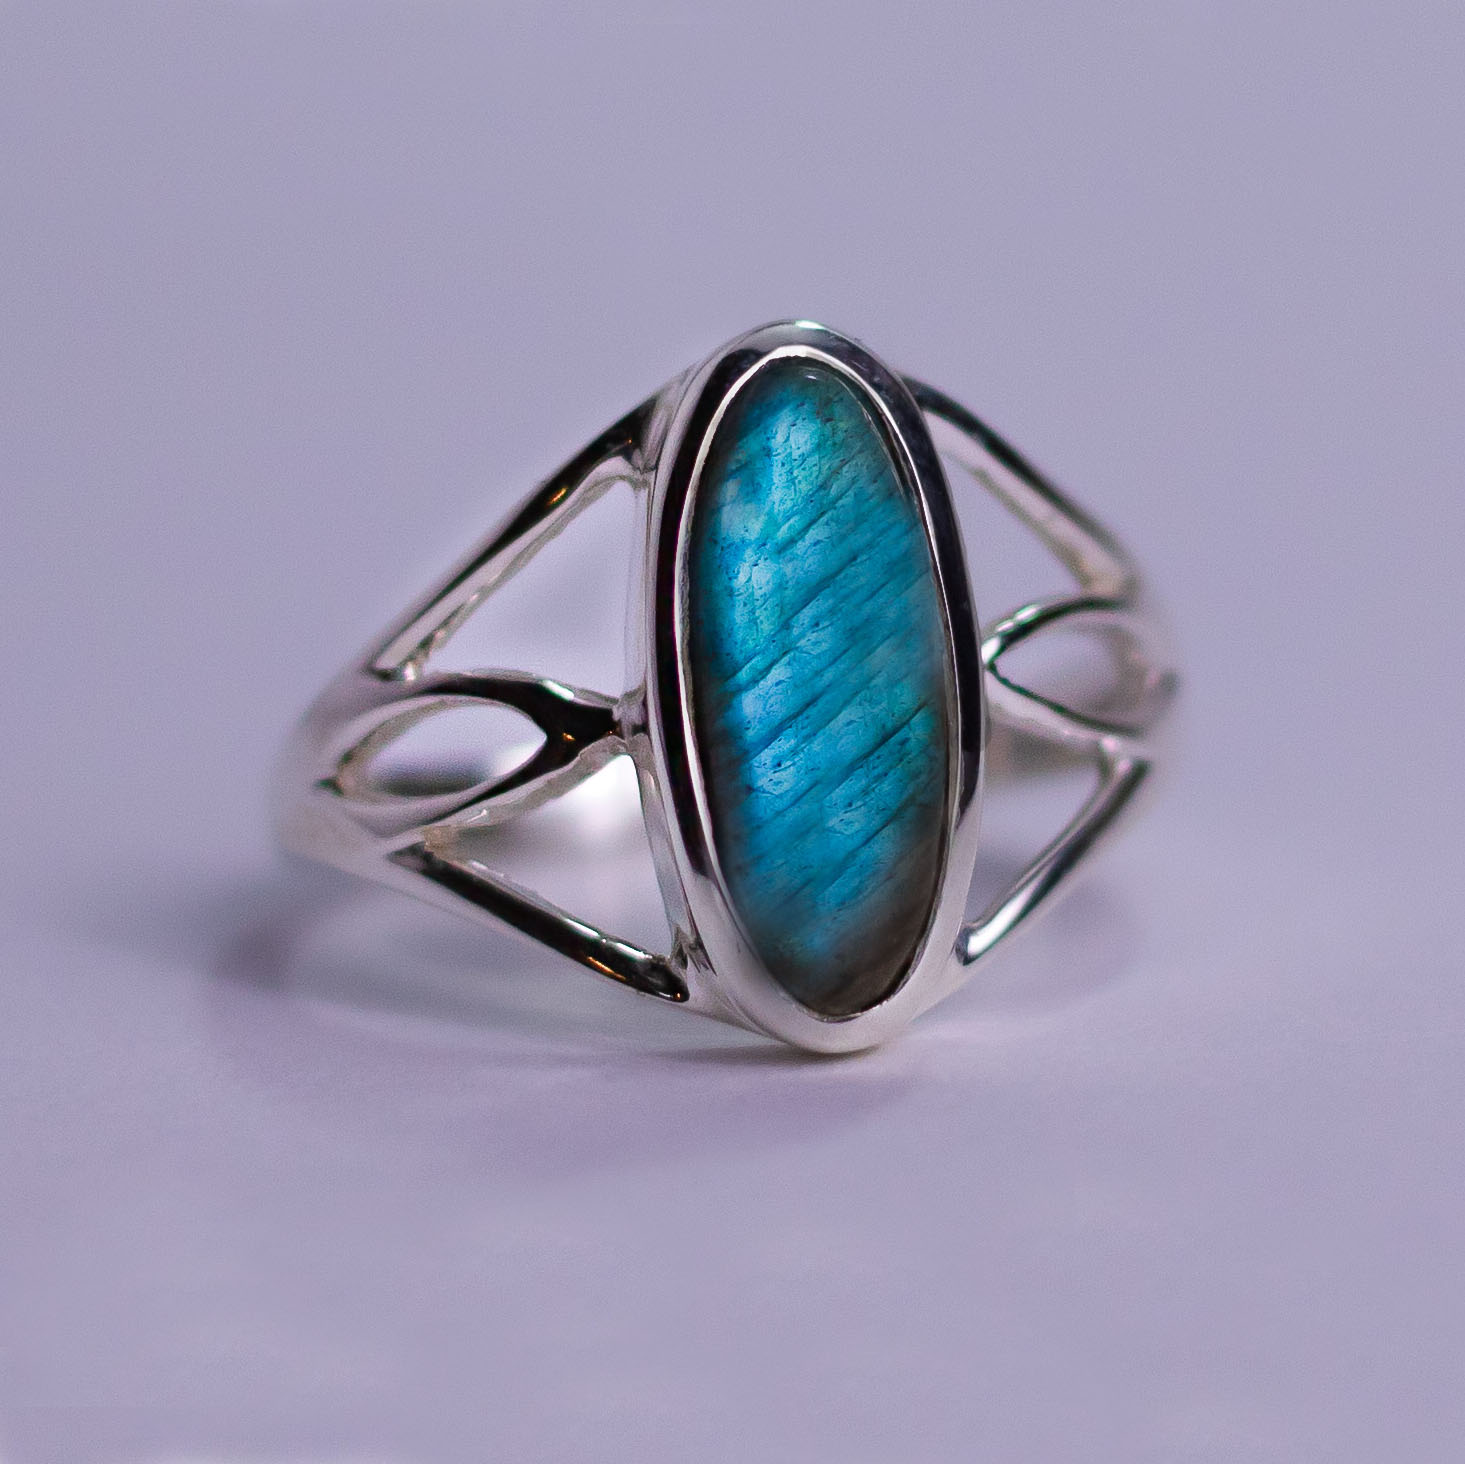 Labradorite Glowing Ring